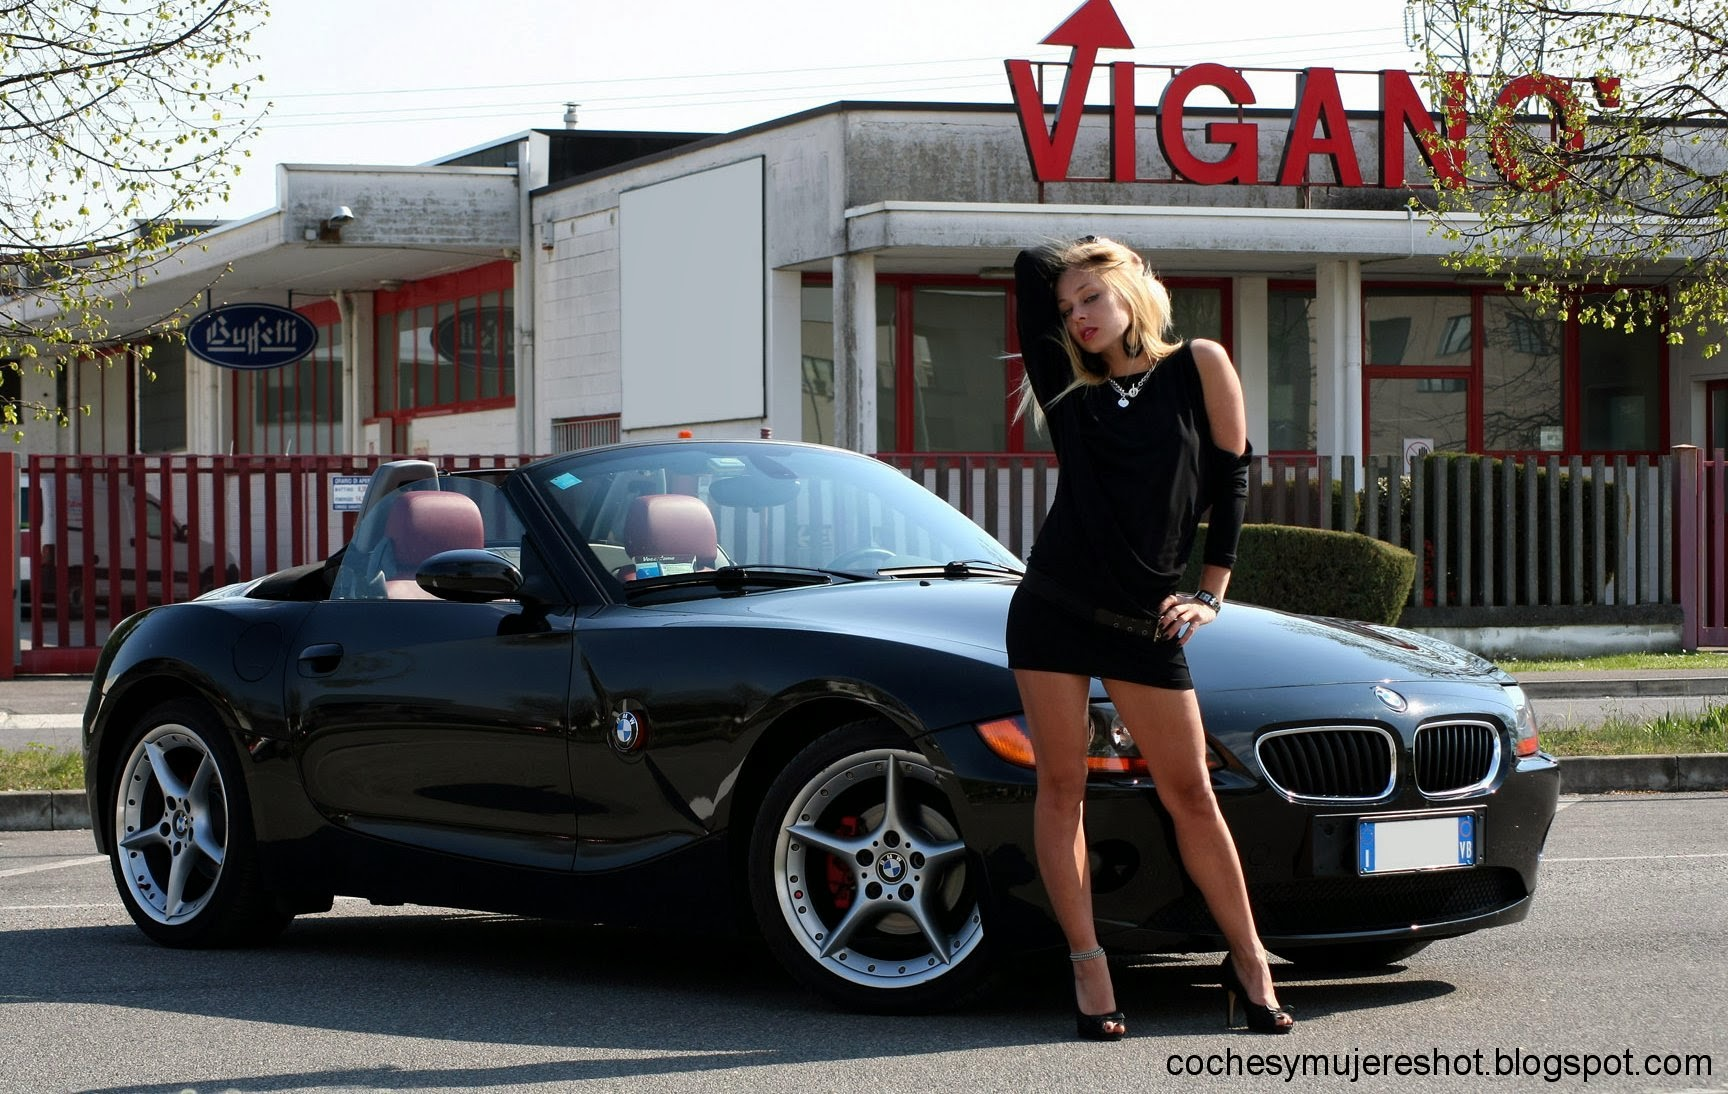 Coches Y Mujeres Resoluci 243 N Hd Bmw Z4 And Girls